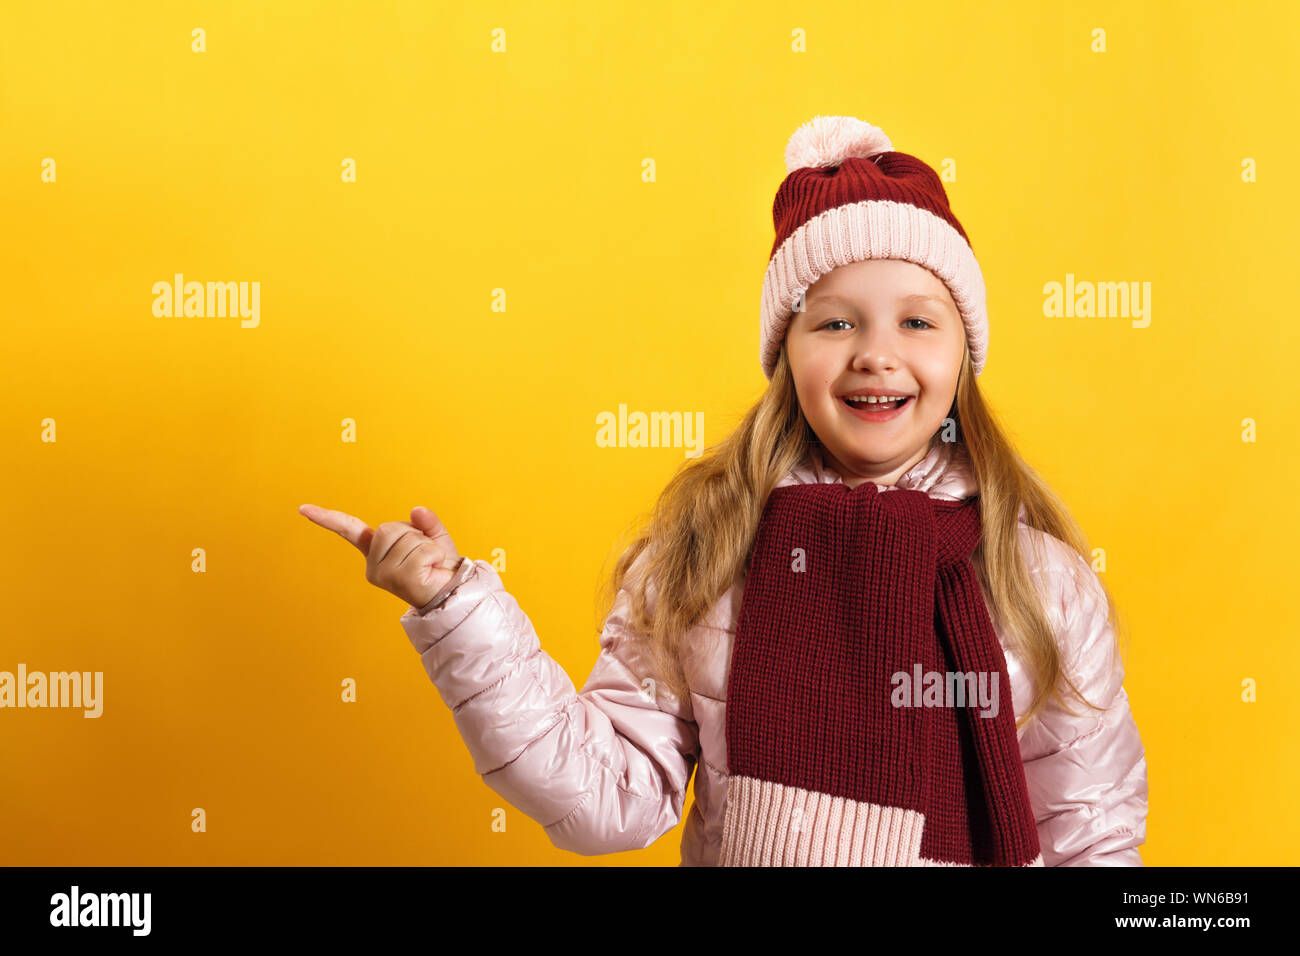 Little girl in a jacket, scarf and hat on a yellow background. The child shows the index finger to the side. - Stock Photo